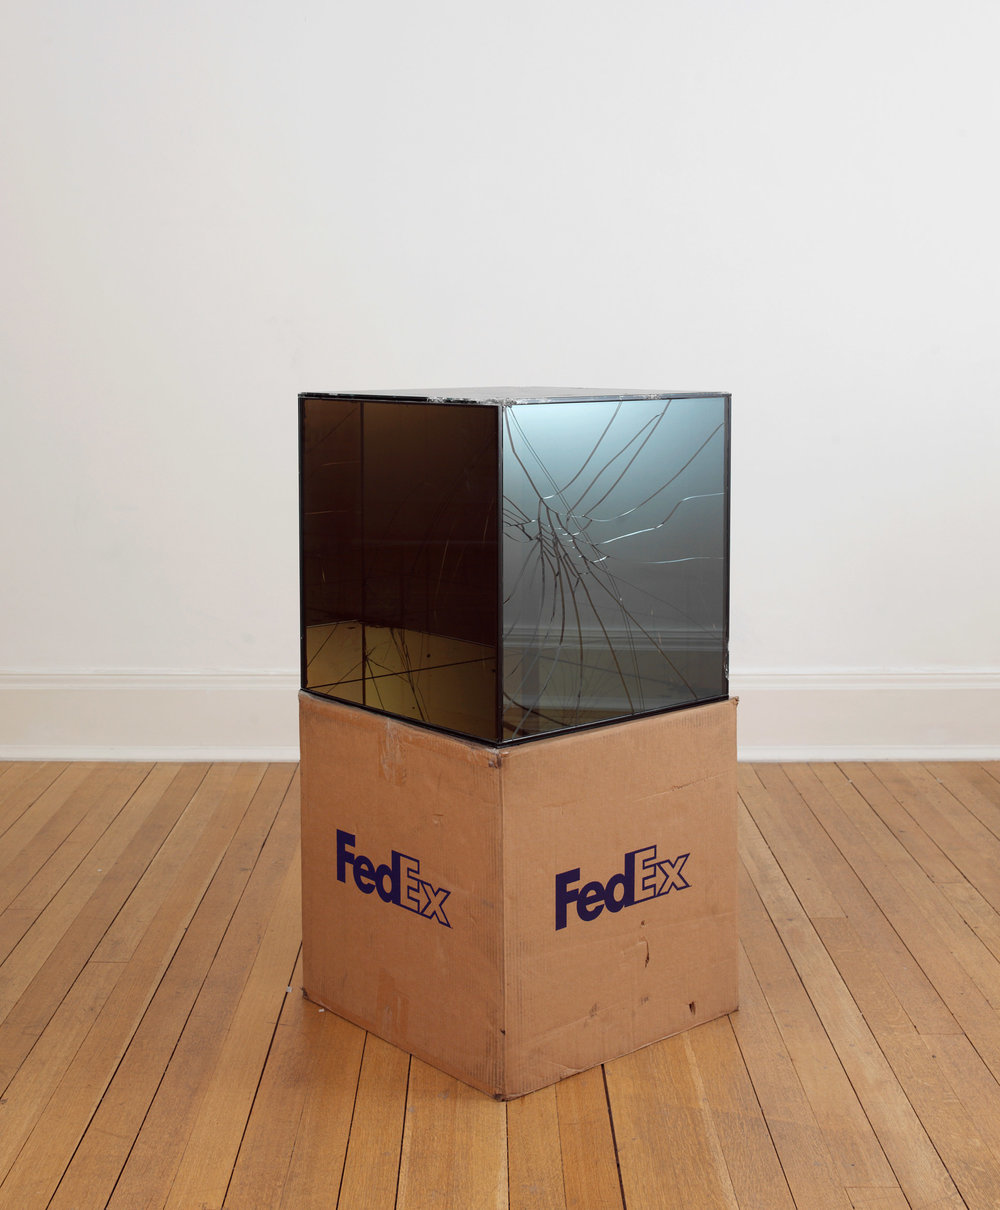 FedEx® Large Kraft Box  © 2008 FEDEX 330510 REV 6/08 GP, International Priority, Los Angeles–London trk#868587728072, October 02–05, 2009   2009–  Laminated Mirropane, FedEx shipping box, accrued FedEx shipping and tracking labels, silicone, metal, tape  20 x 20 x 20 inches   FedEx Glass Works, 2007–    Production Stills, 2009